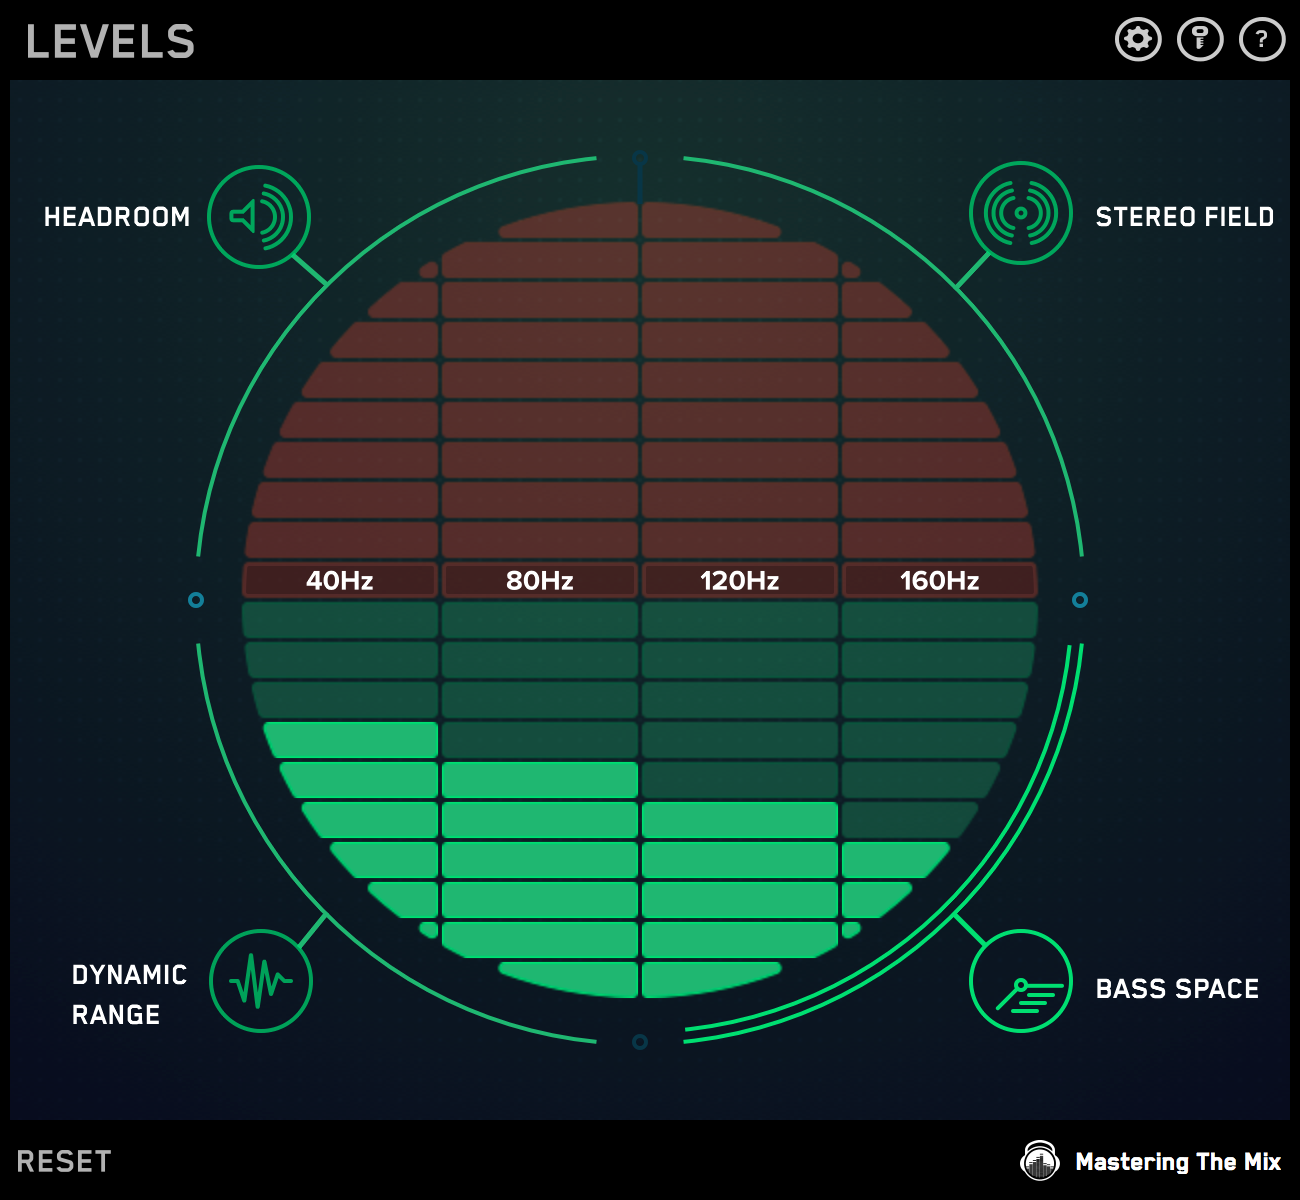 Bass Space in LEVELS